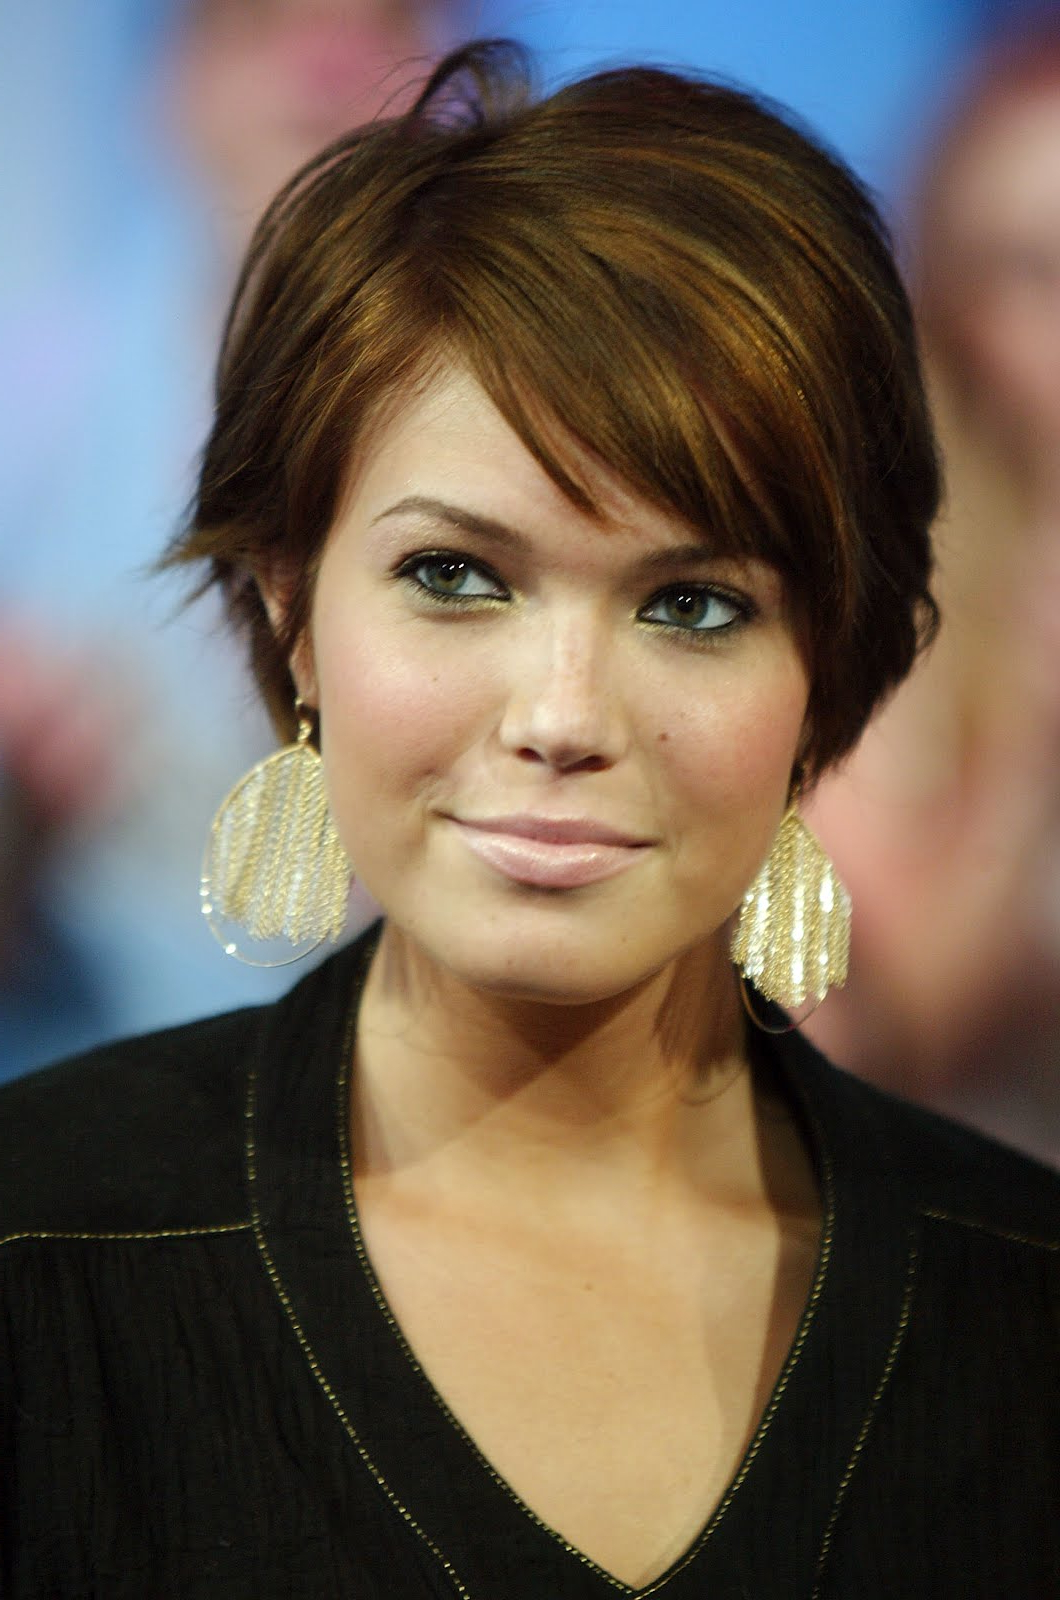 30 Gorgeous Short Haircuts For Round Faces With Regard To Trendy Short Haircuts For Round Faces (View 17 of 25)